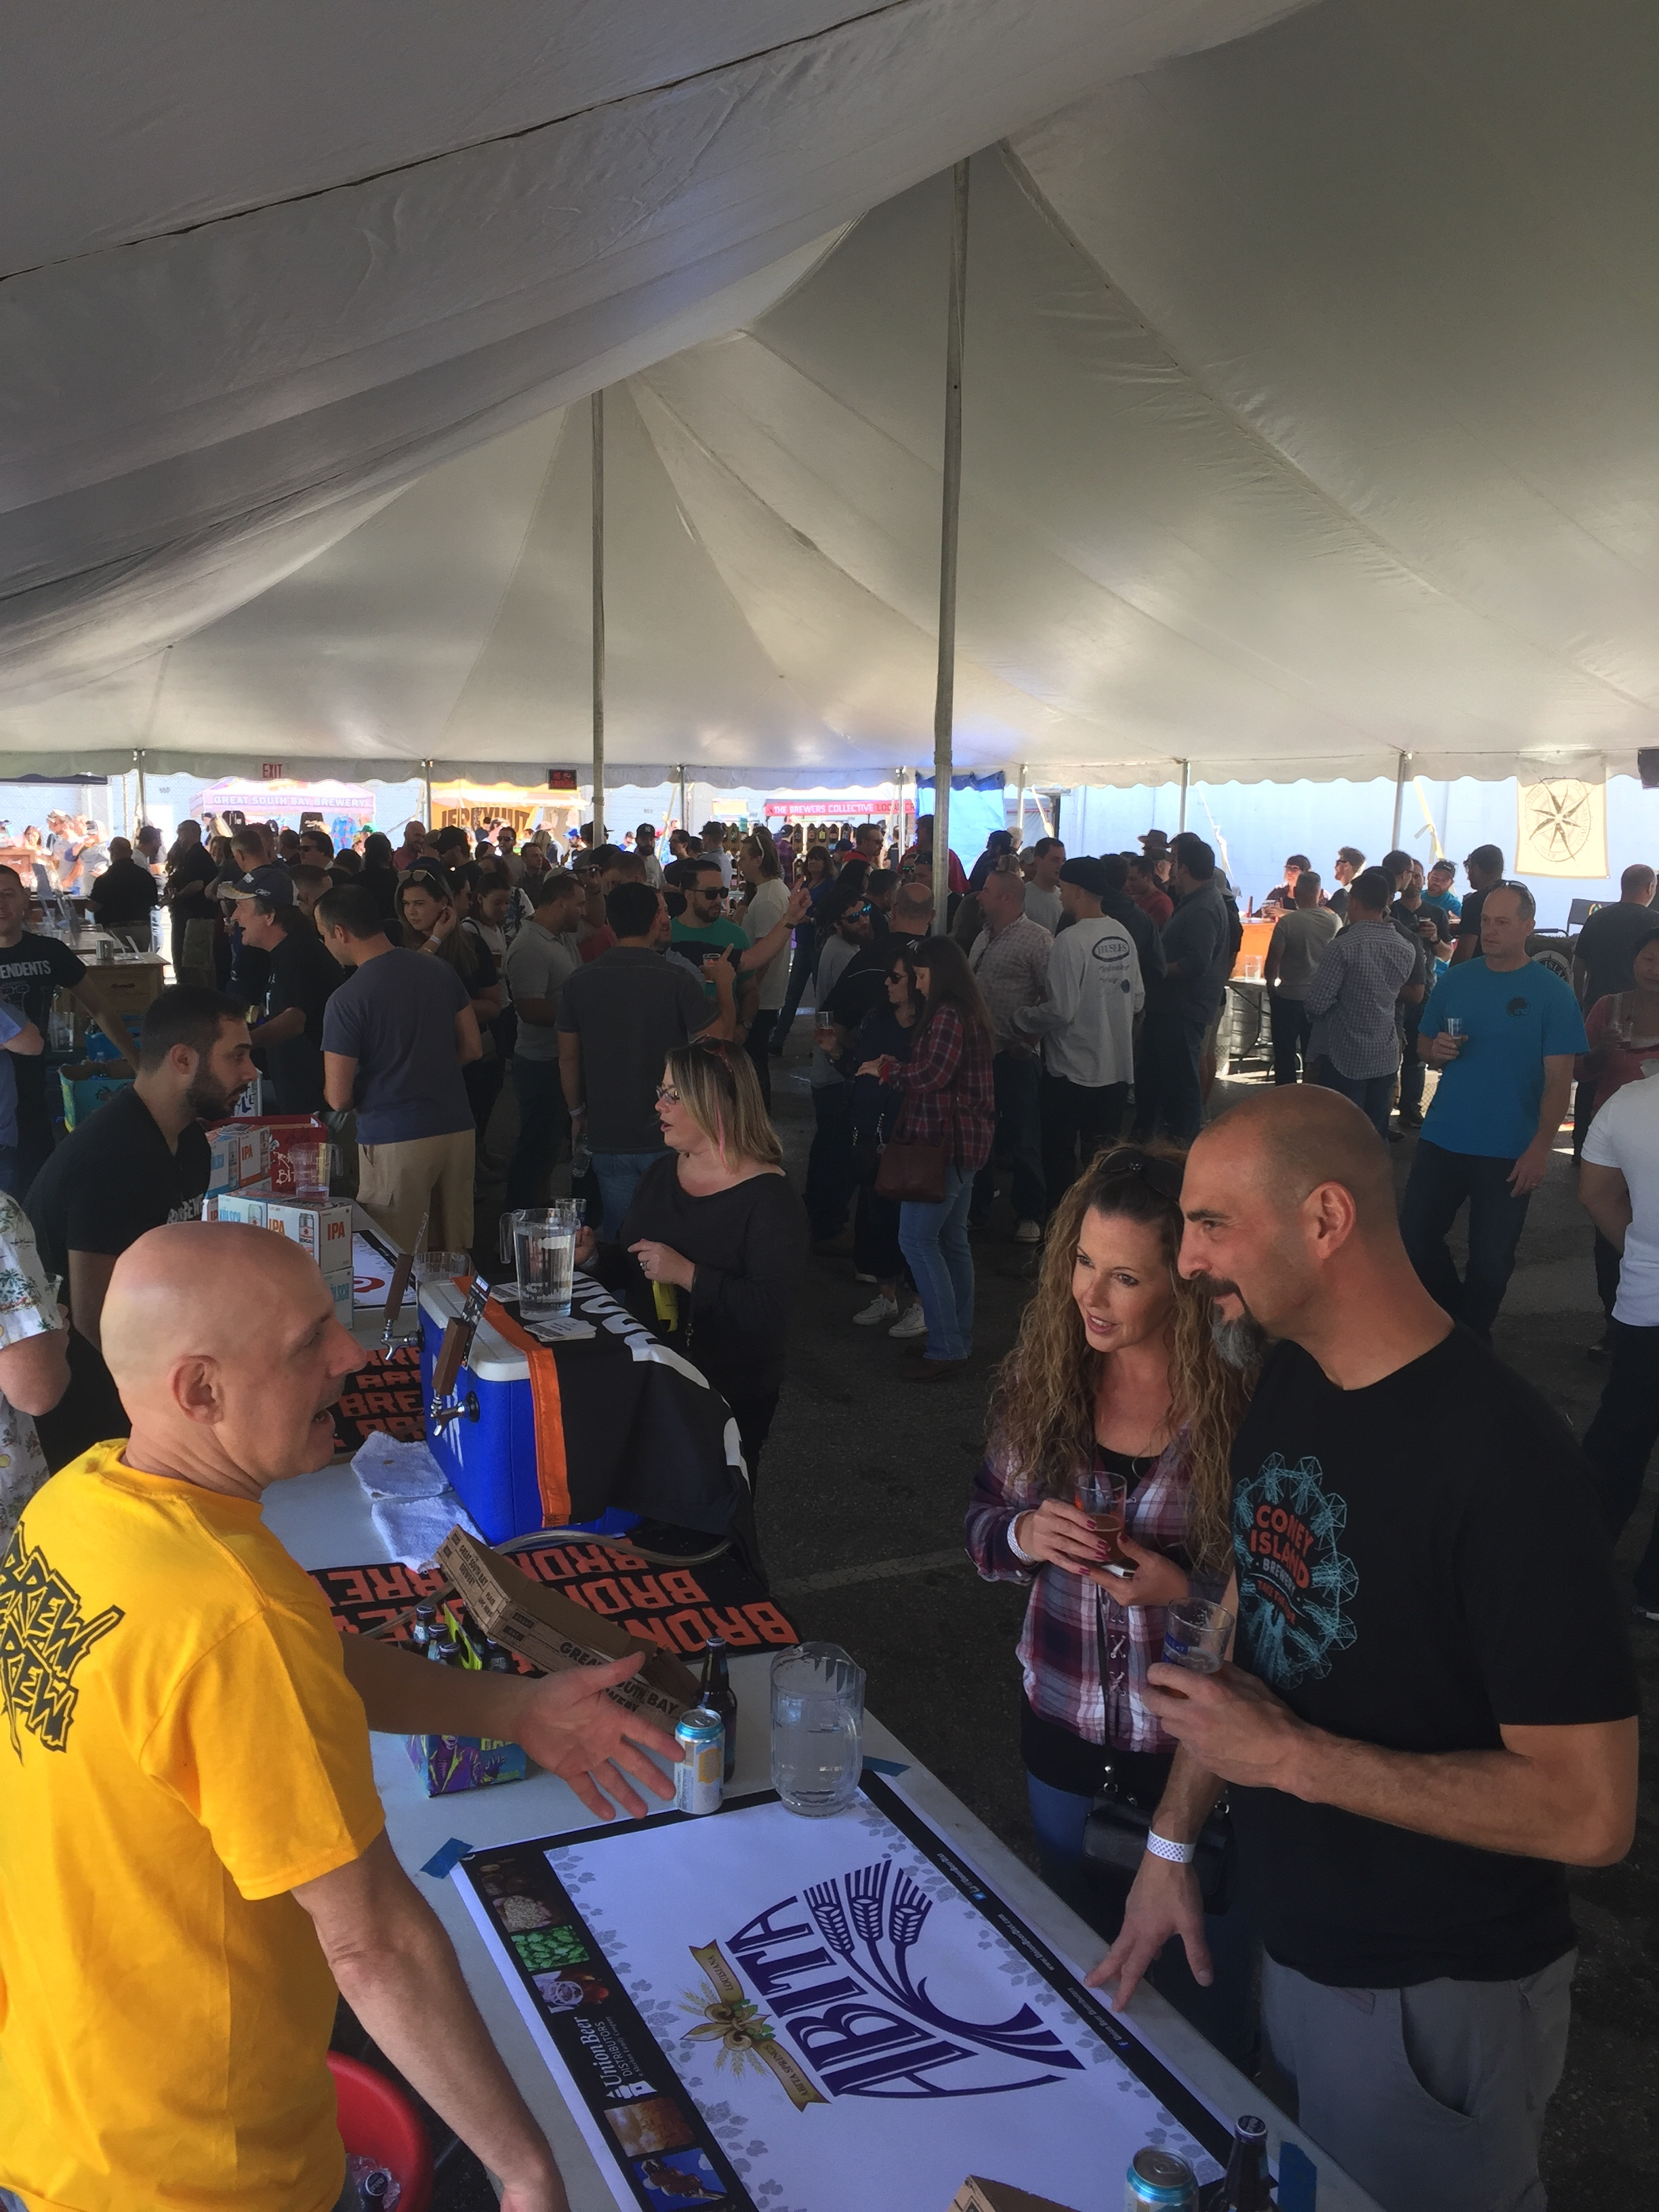 bellmore brewing puntoberfest 2017 people.JPG